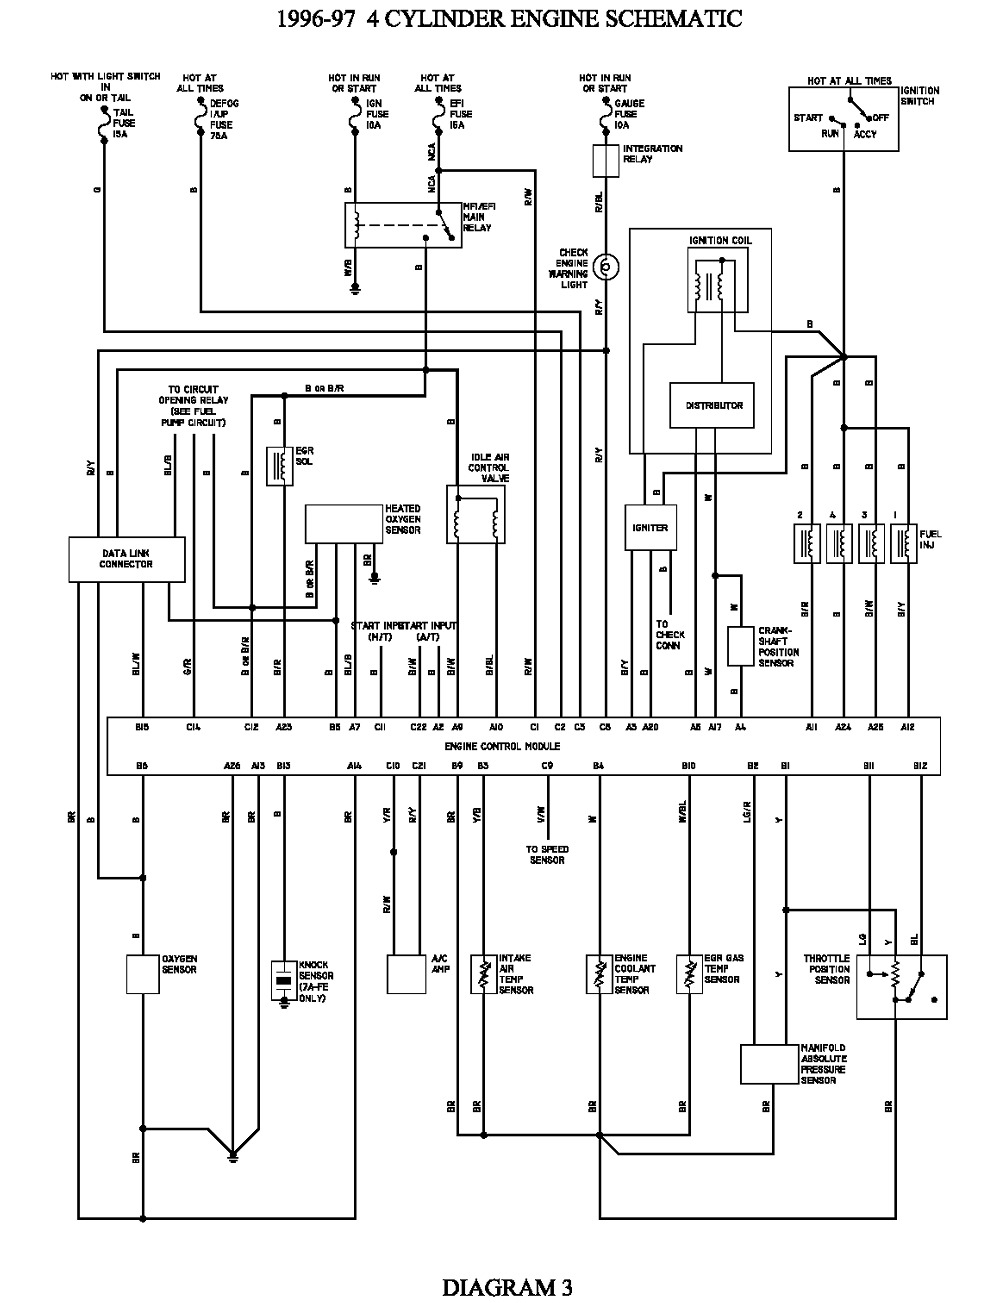 toyota corolla wiring diagram Collection-Toyota Corolla Wiring Diagram Awesome toyota Wiring Diagram Dolgular 10-e